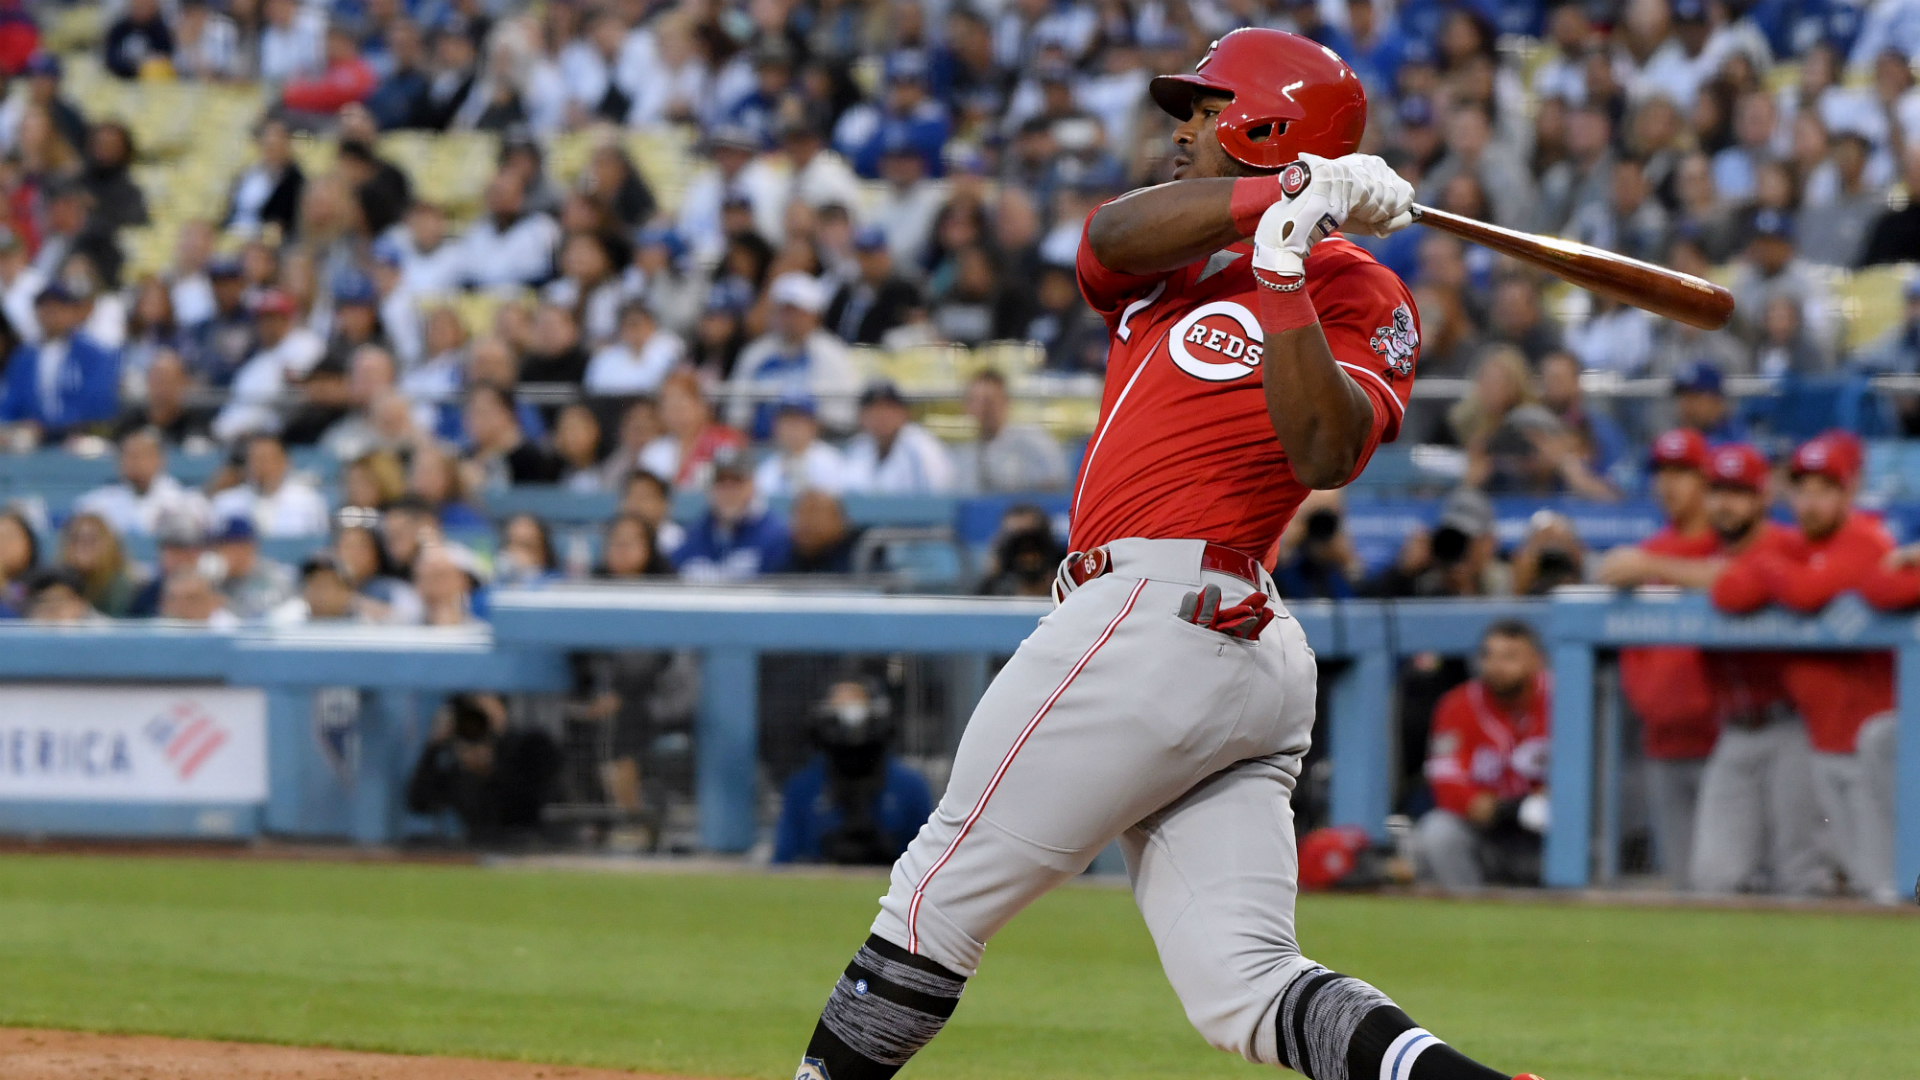 Yasiel Puig seizes moment again with homer vs. LA — but can he keep it up?